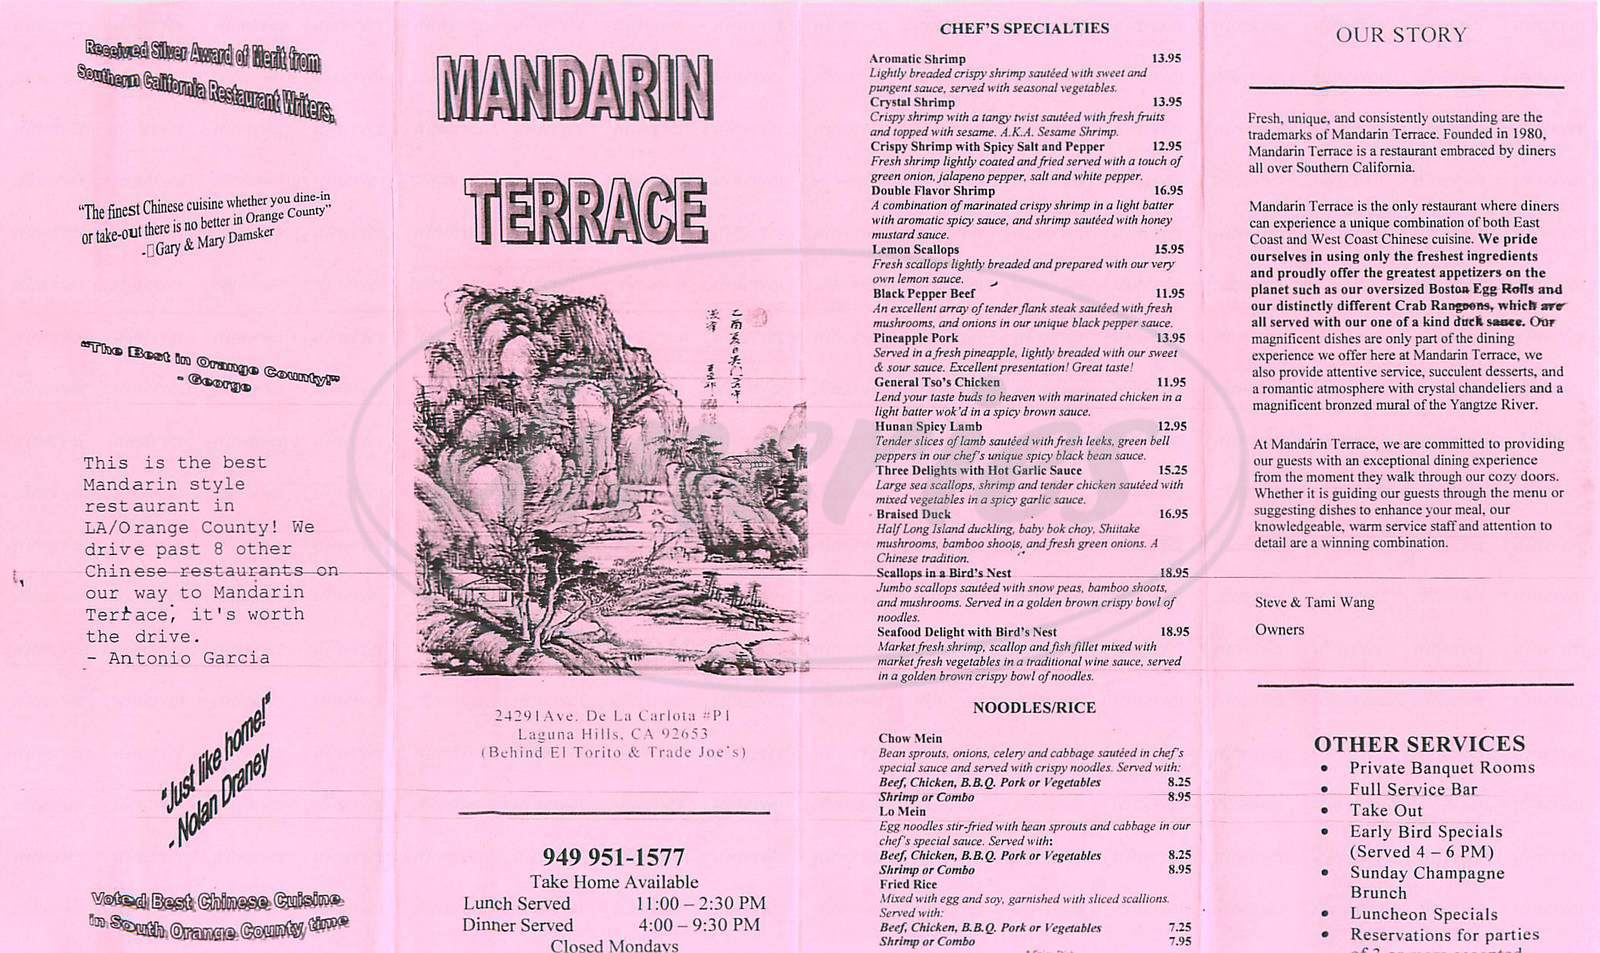 Big menu for Mandarin Terrace, Laguna Hills